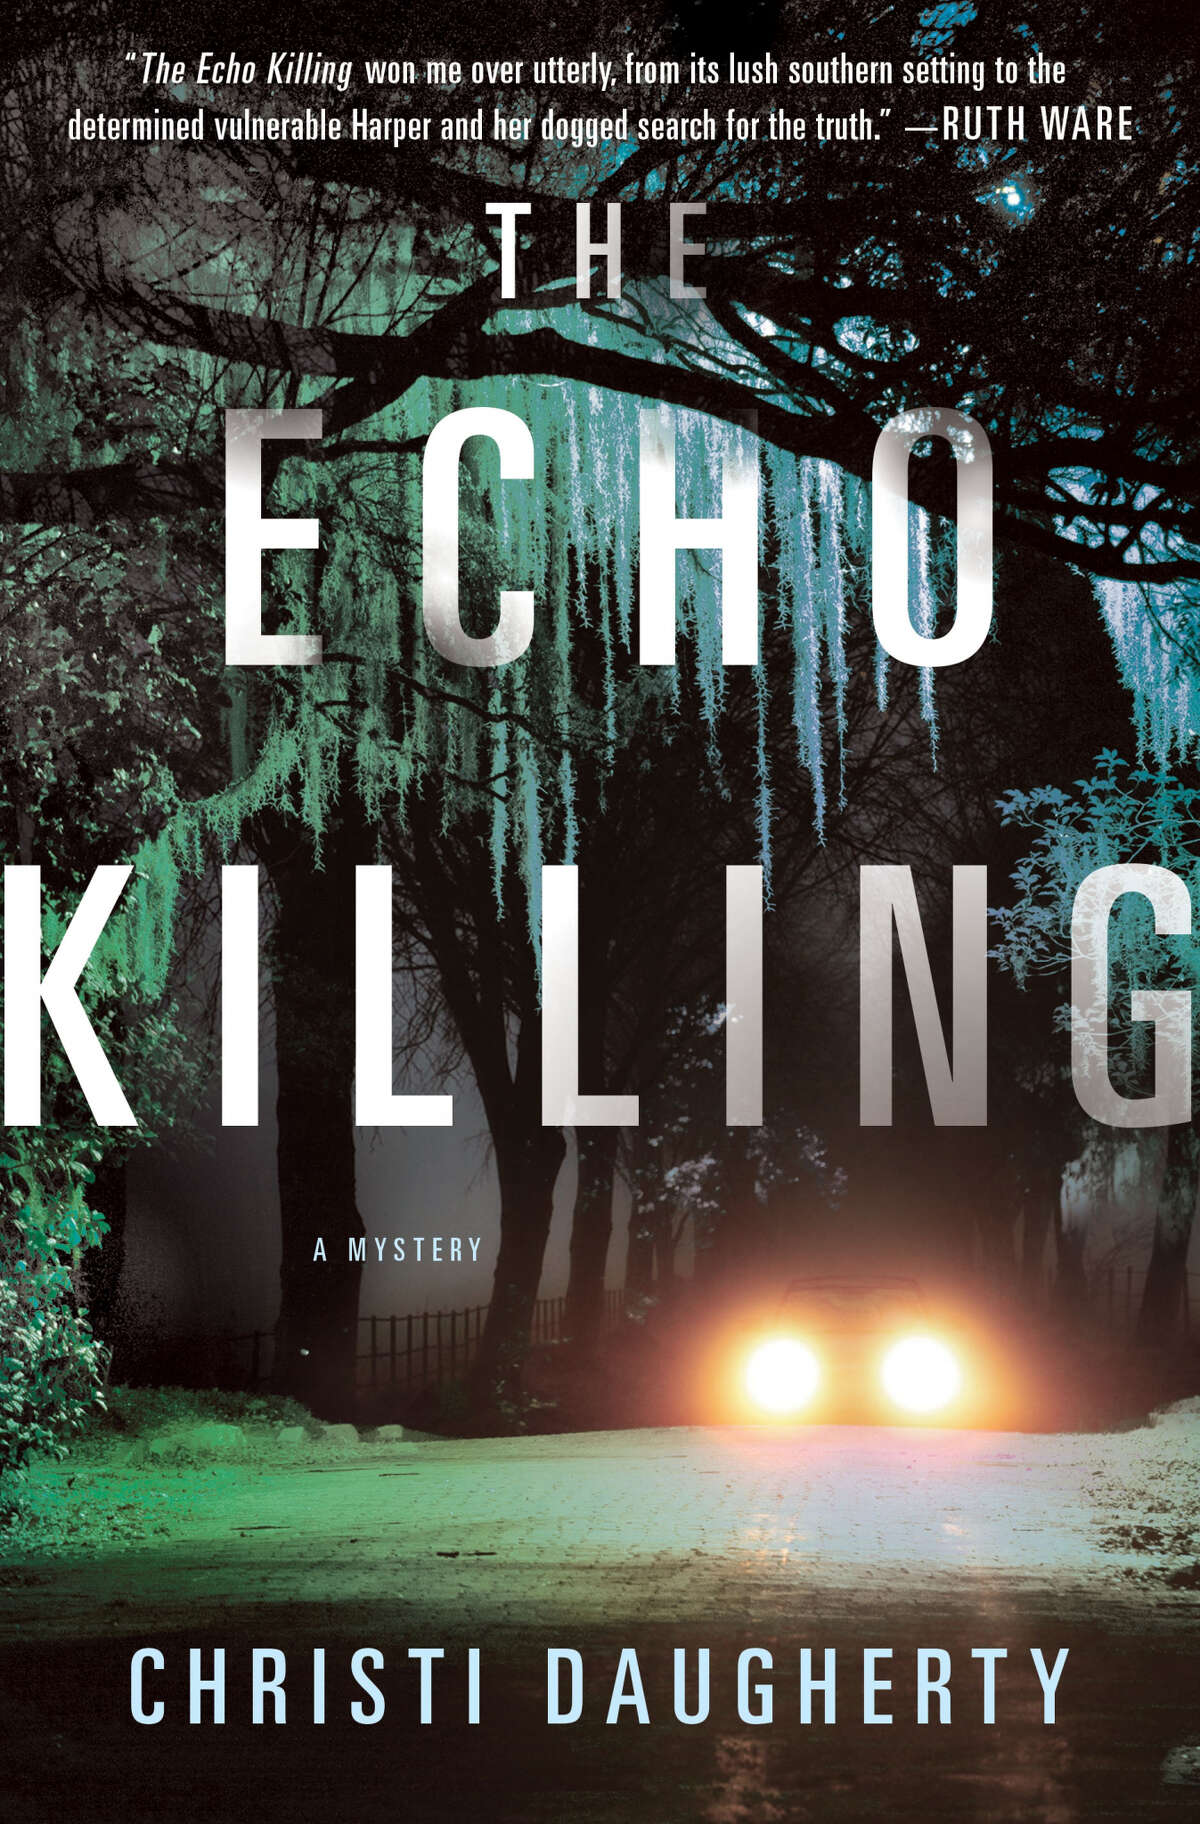 The thriller explores the two sides of Savannah, Ga.